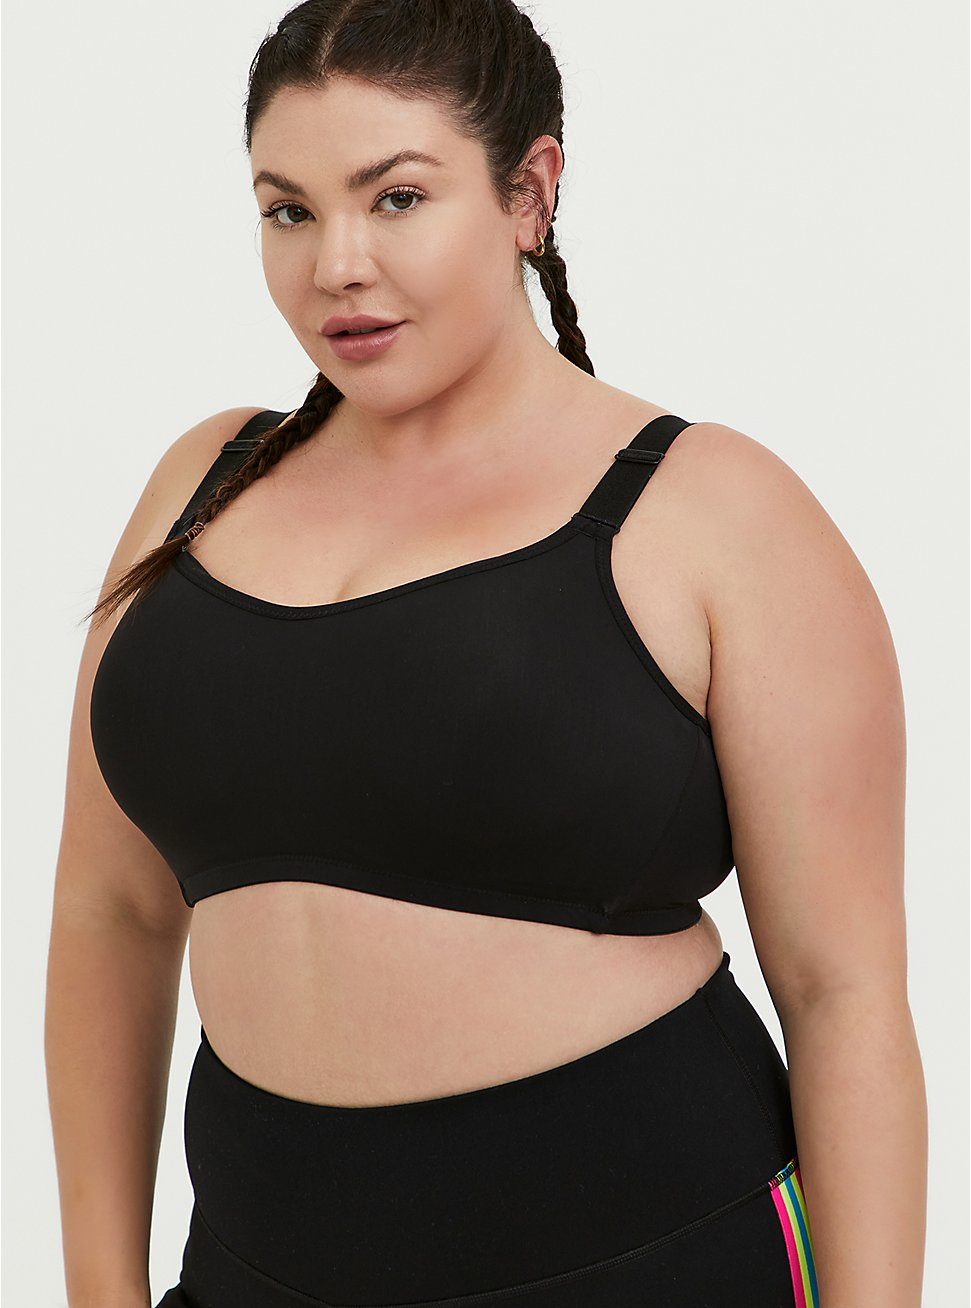 Black Wireless Wicking Sports Bra, DEEP BLACK, hi-res